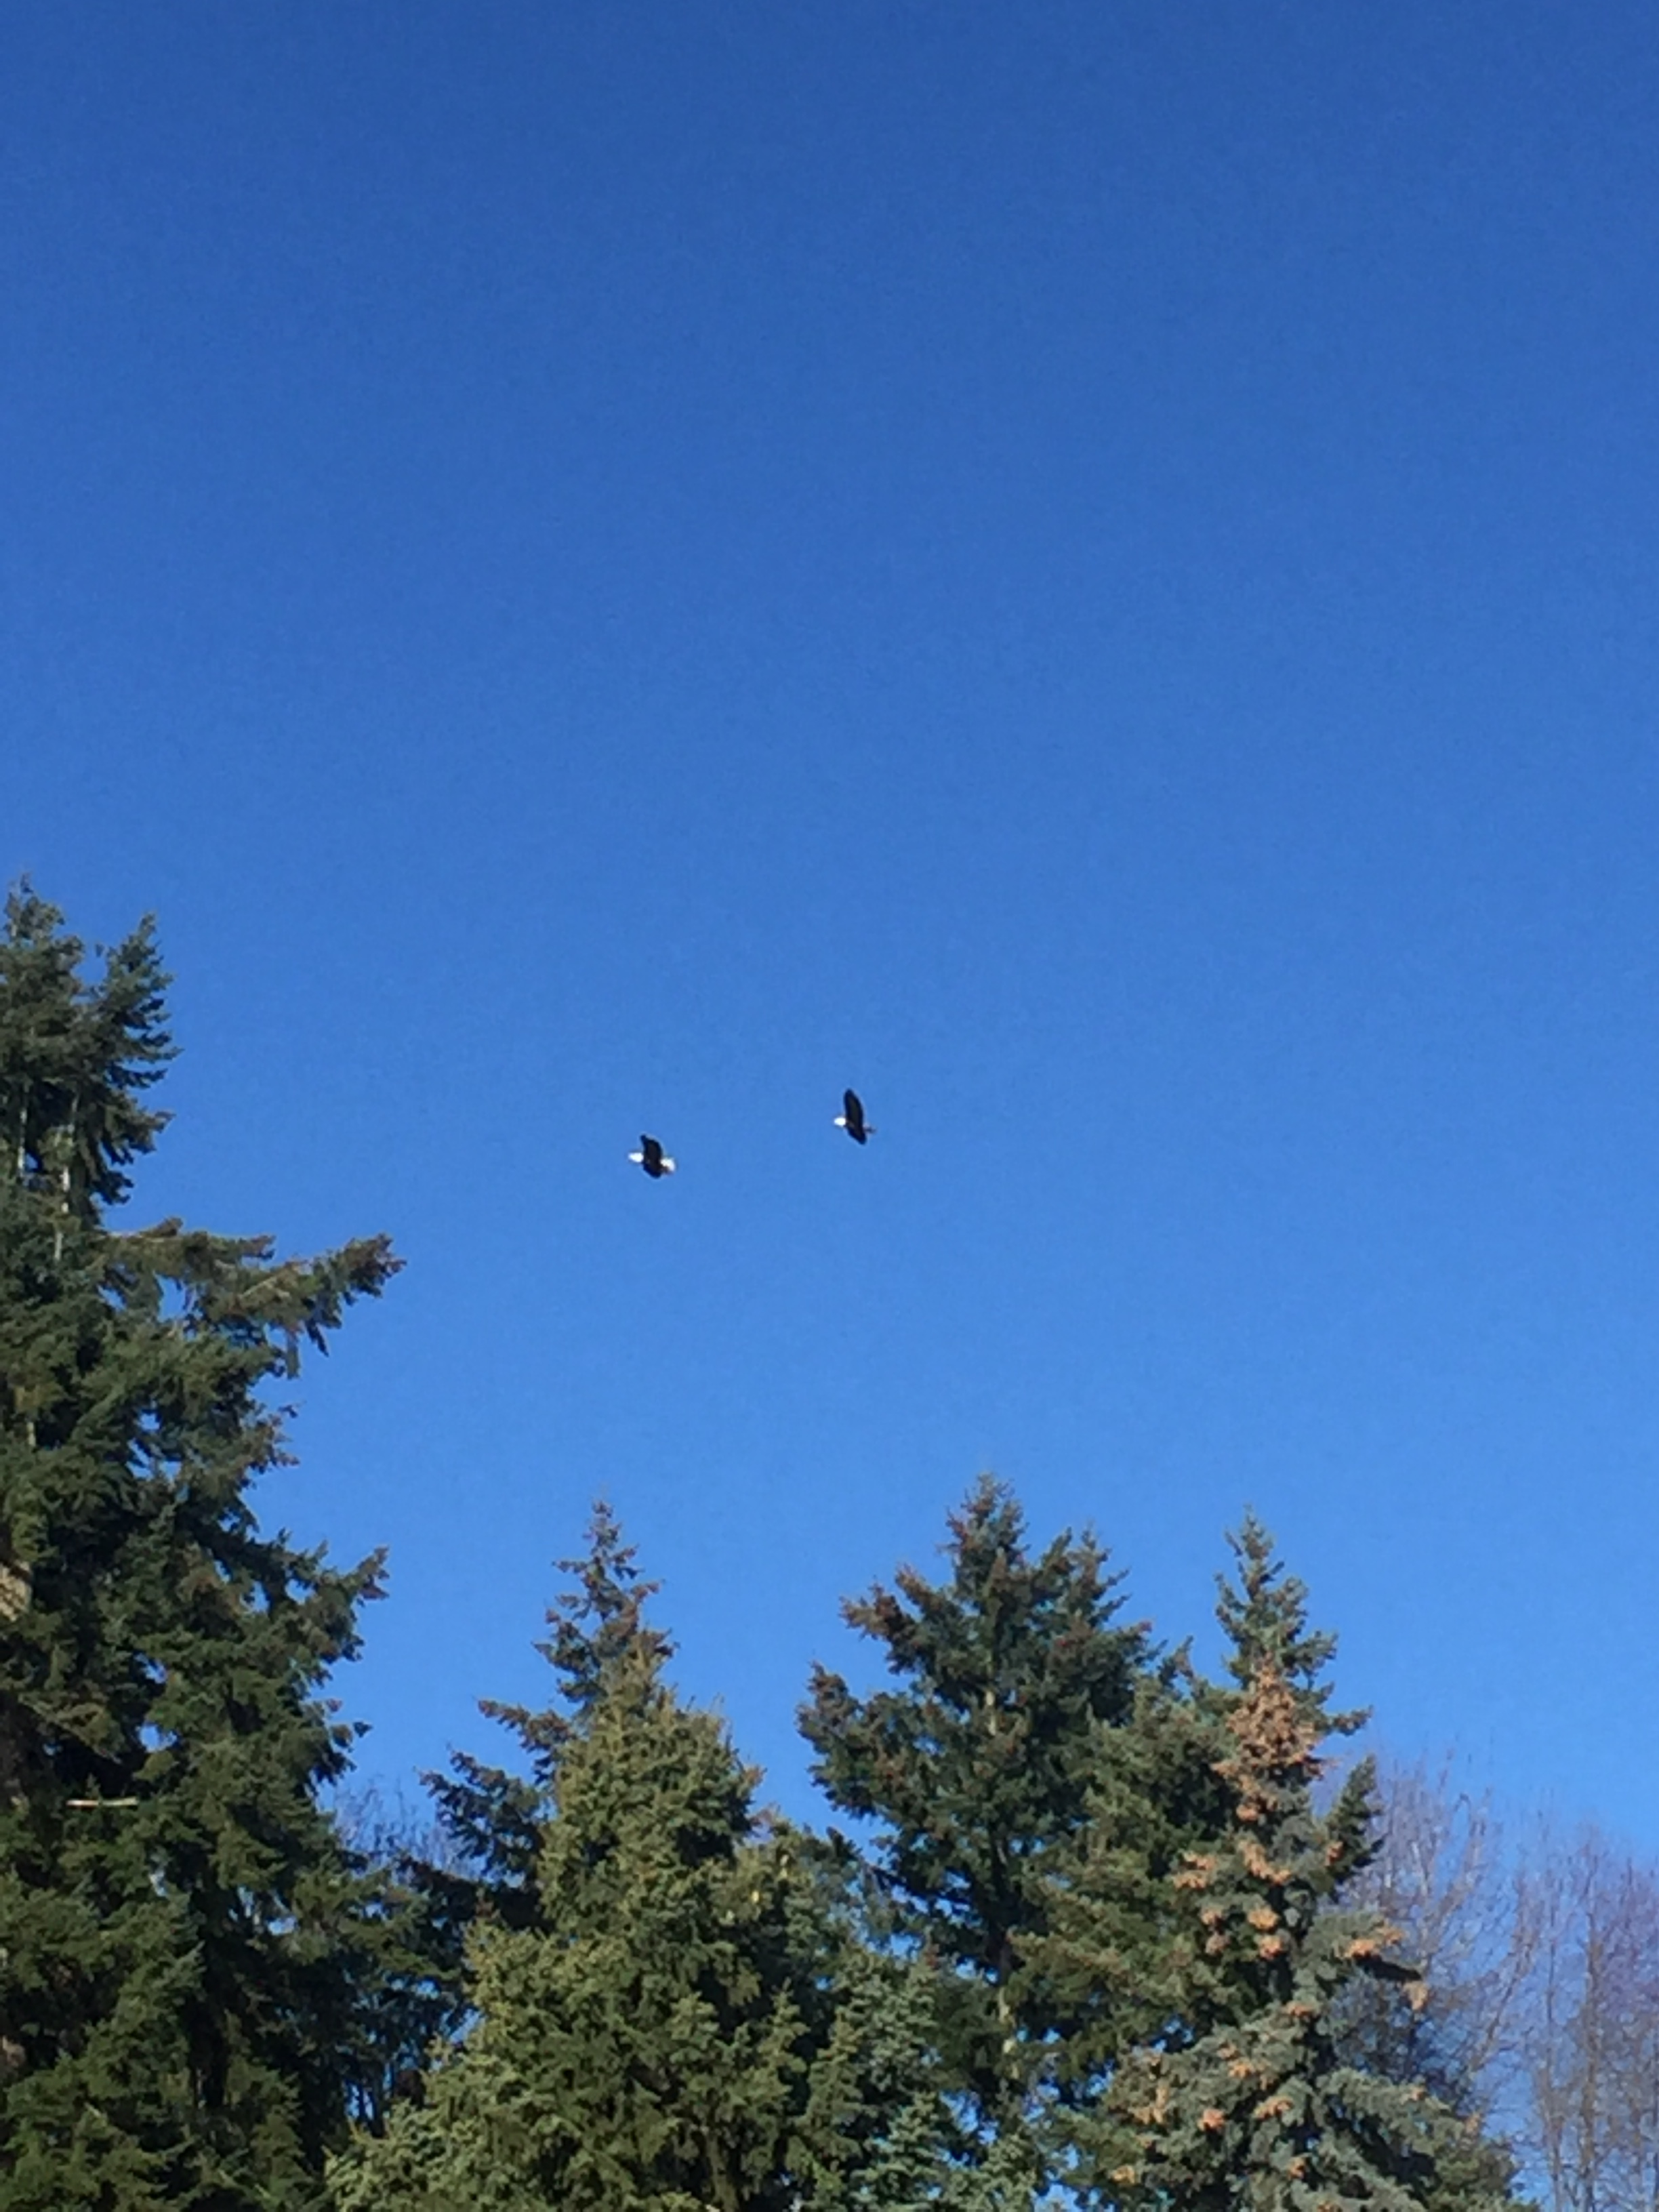 A pair of eagles flying over the tree tops.